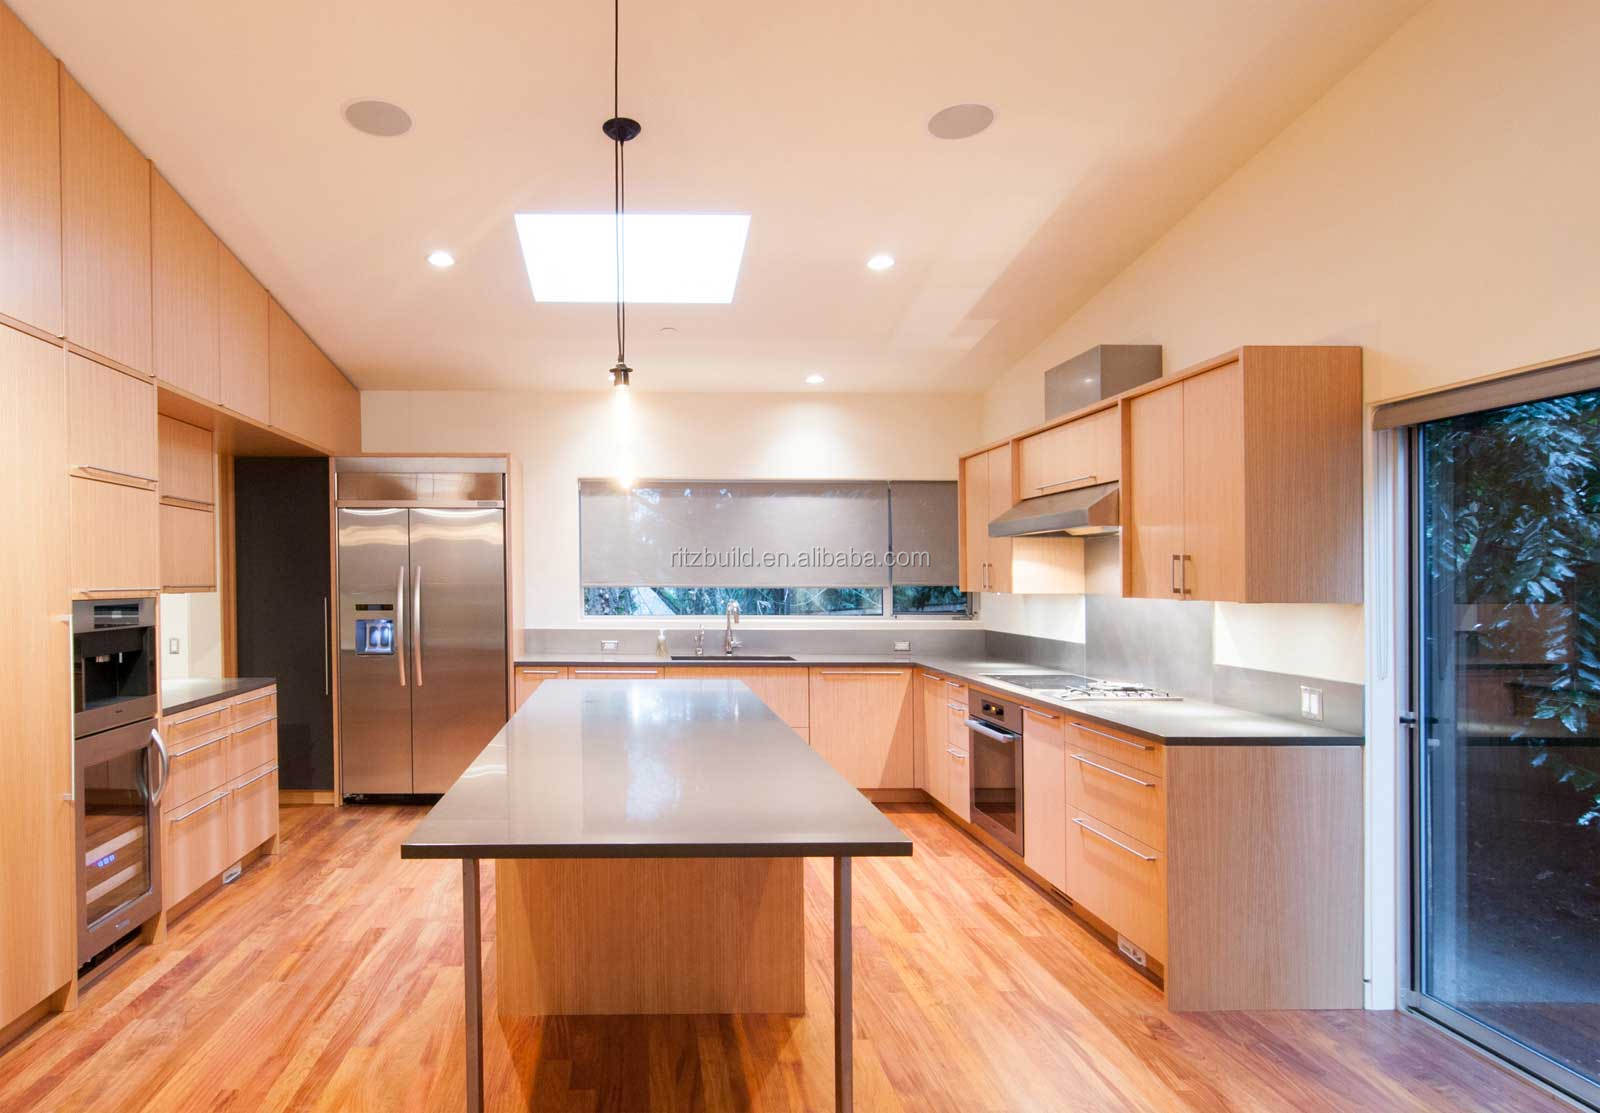 free design customized kitchen cabinet with laminated sheet kitchen cabinet - Customized Kitchen Cabinets